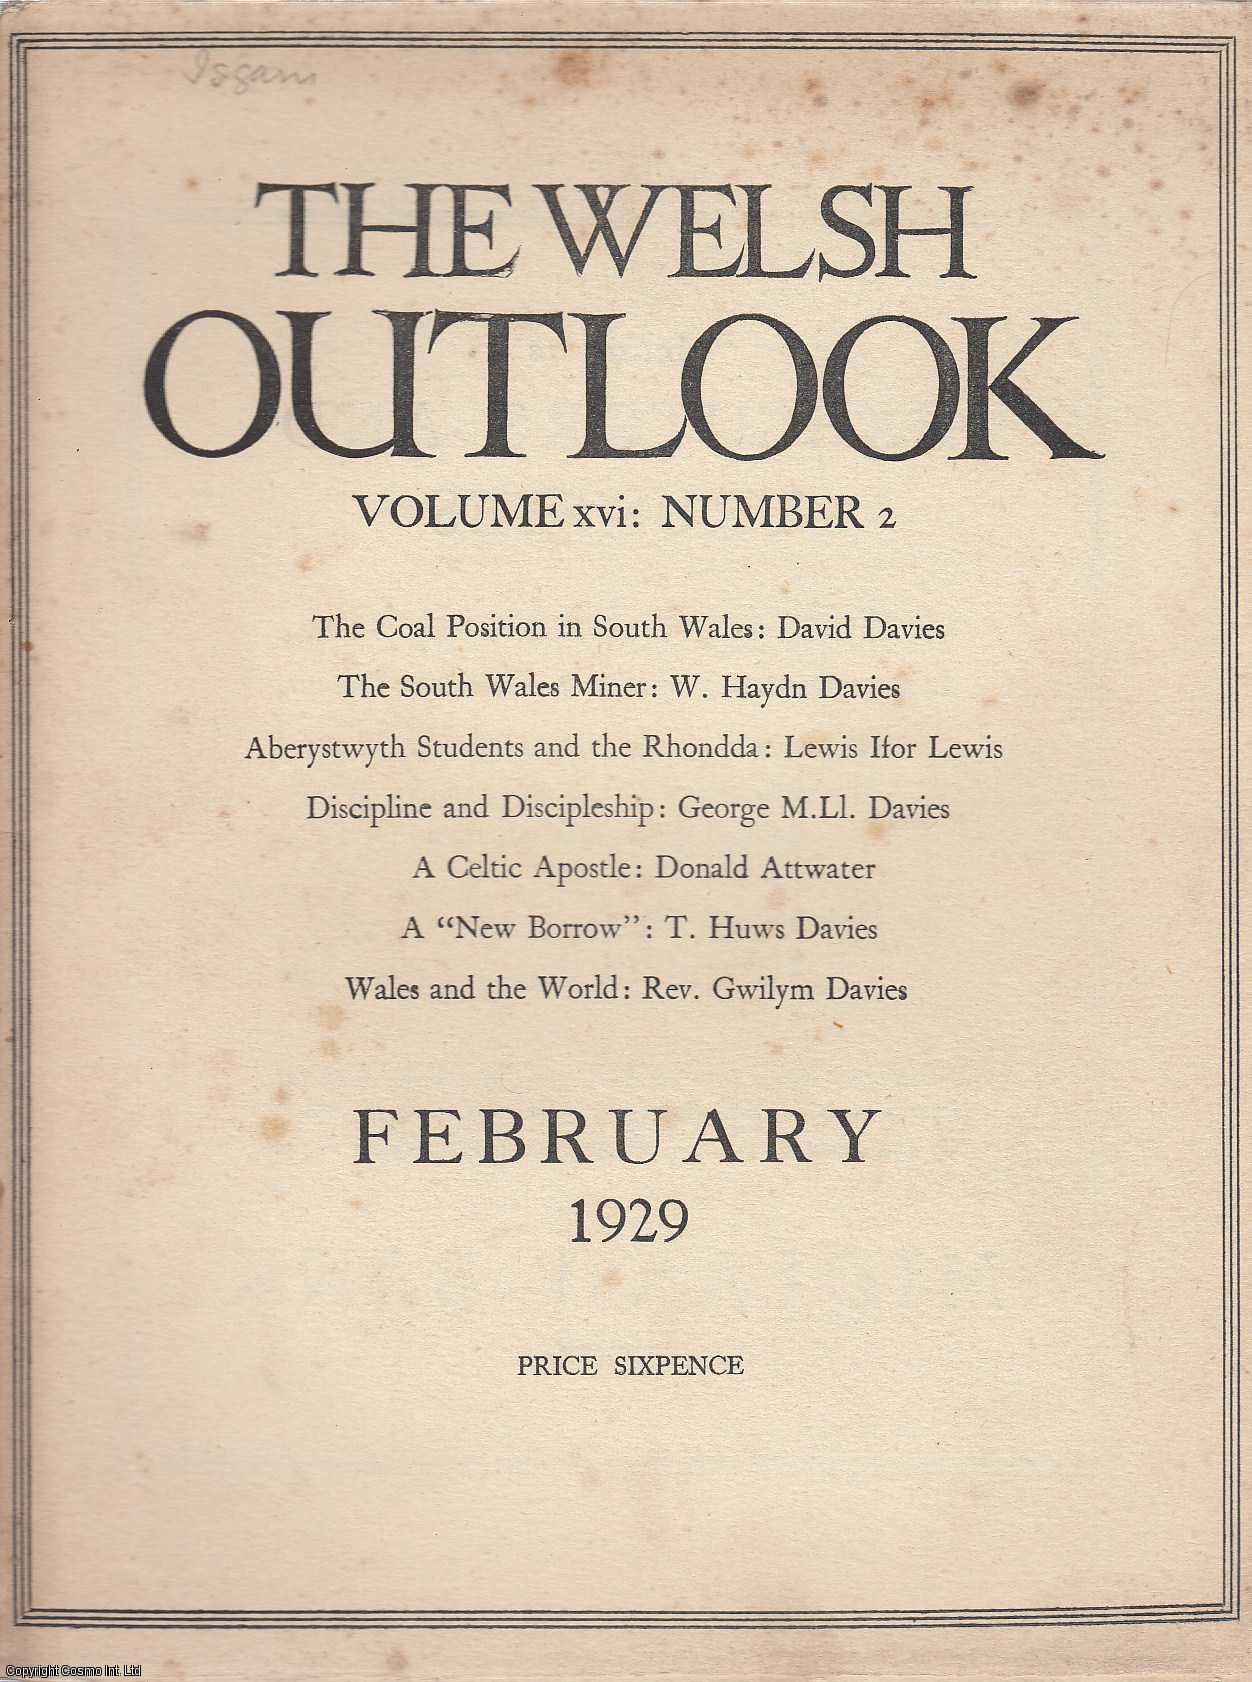 The Welsh Outlook. A Monthly Journal of National Social Progress. February, 1929. Contains; The Coal Position in South Wales by David Davies; The South Wales Miner by W. Haydn Davies; Aberystwyth Students and The Rhondda by Lewis Ifor Lewis; Discipline and Discipleship by George M. Ll. Davies; A Celtic Apostle by Donald Attwater; A New Borrow by T. Huws Davies; The Welsh League of Nations Union; Wales and The World by Rev. Gwilym Davies; The Natural Resources of Wales VIII - Slate and Materials of Minor Importance by F.J. North., Thomas Jones (Editor)